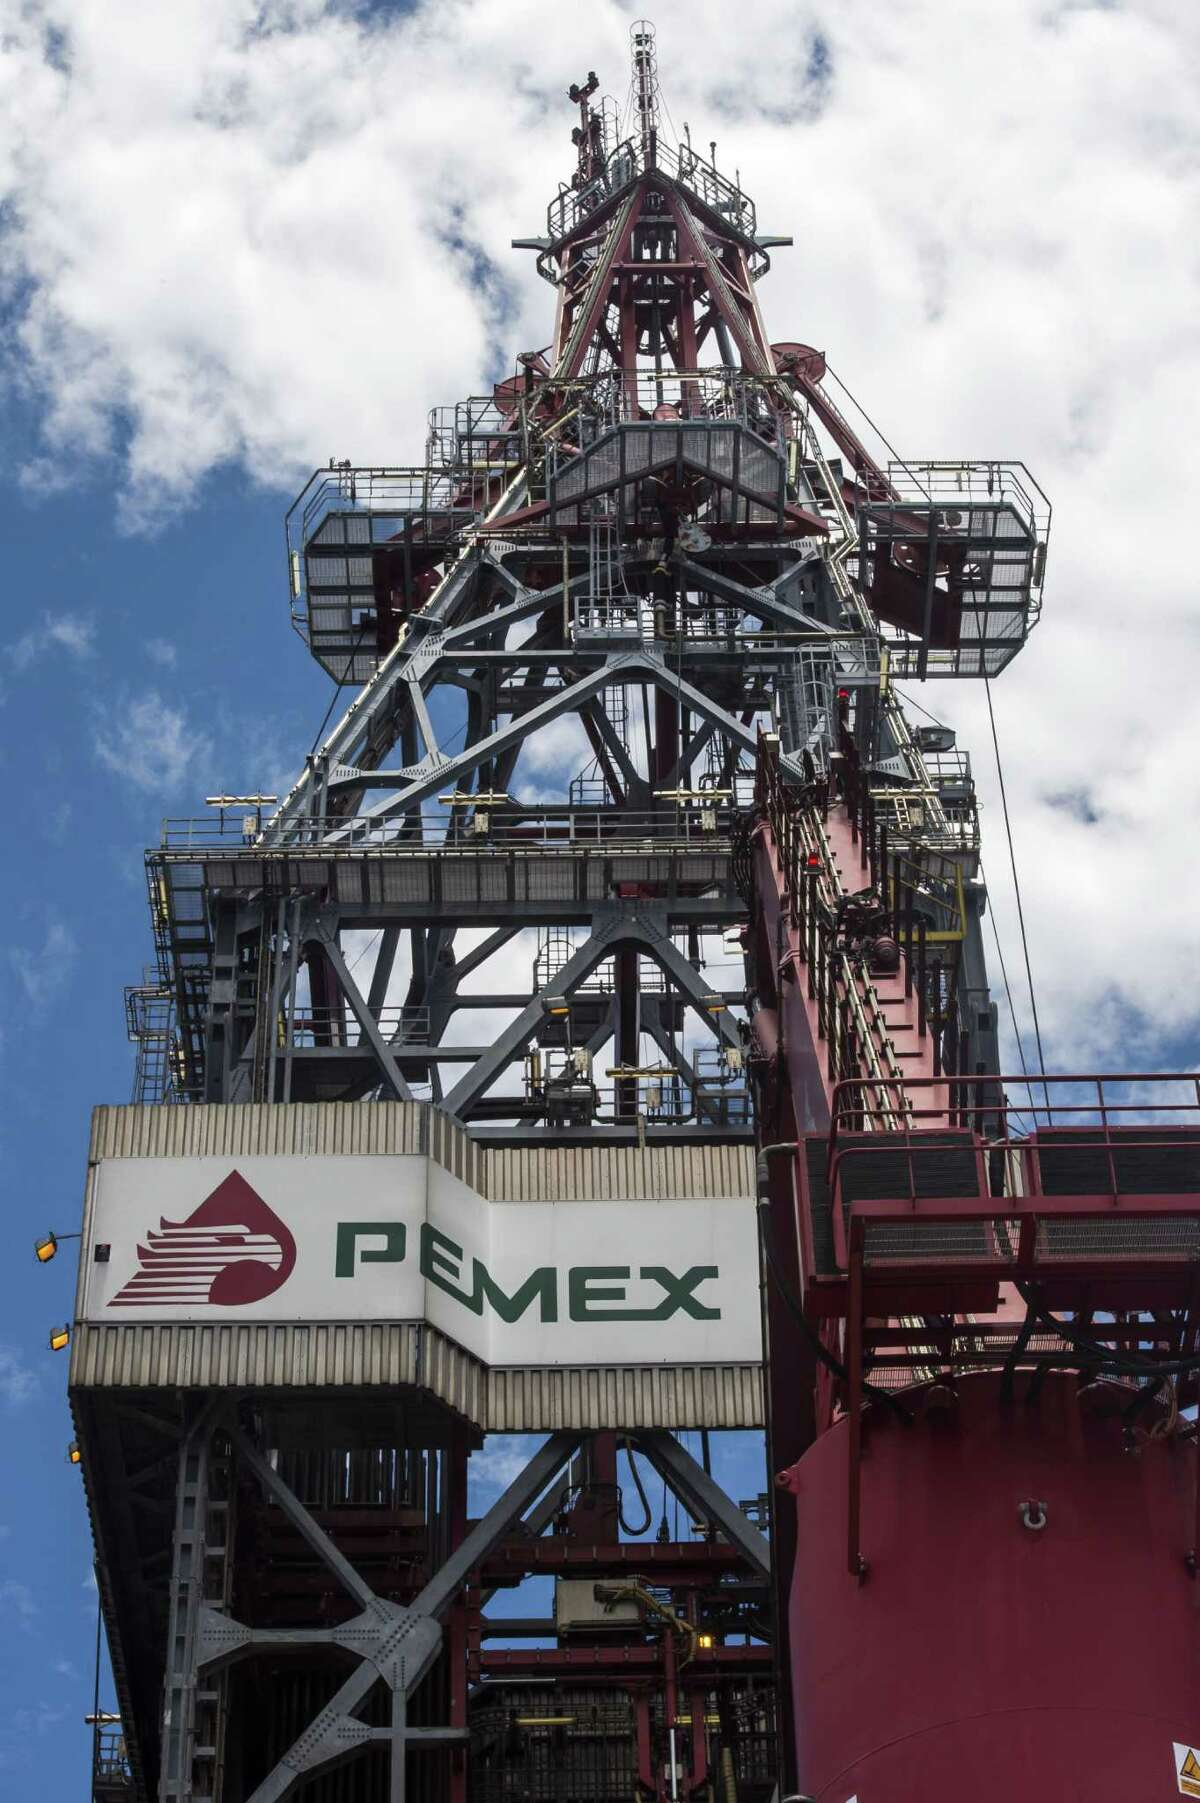 A U.S. government report says the demise of the Pemex state monopoly on Mexico's energy sector could improve the nation's oil production.